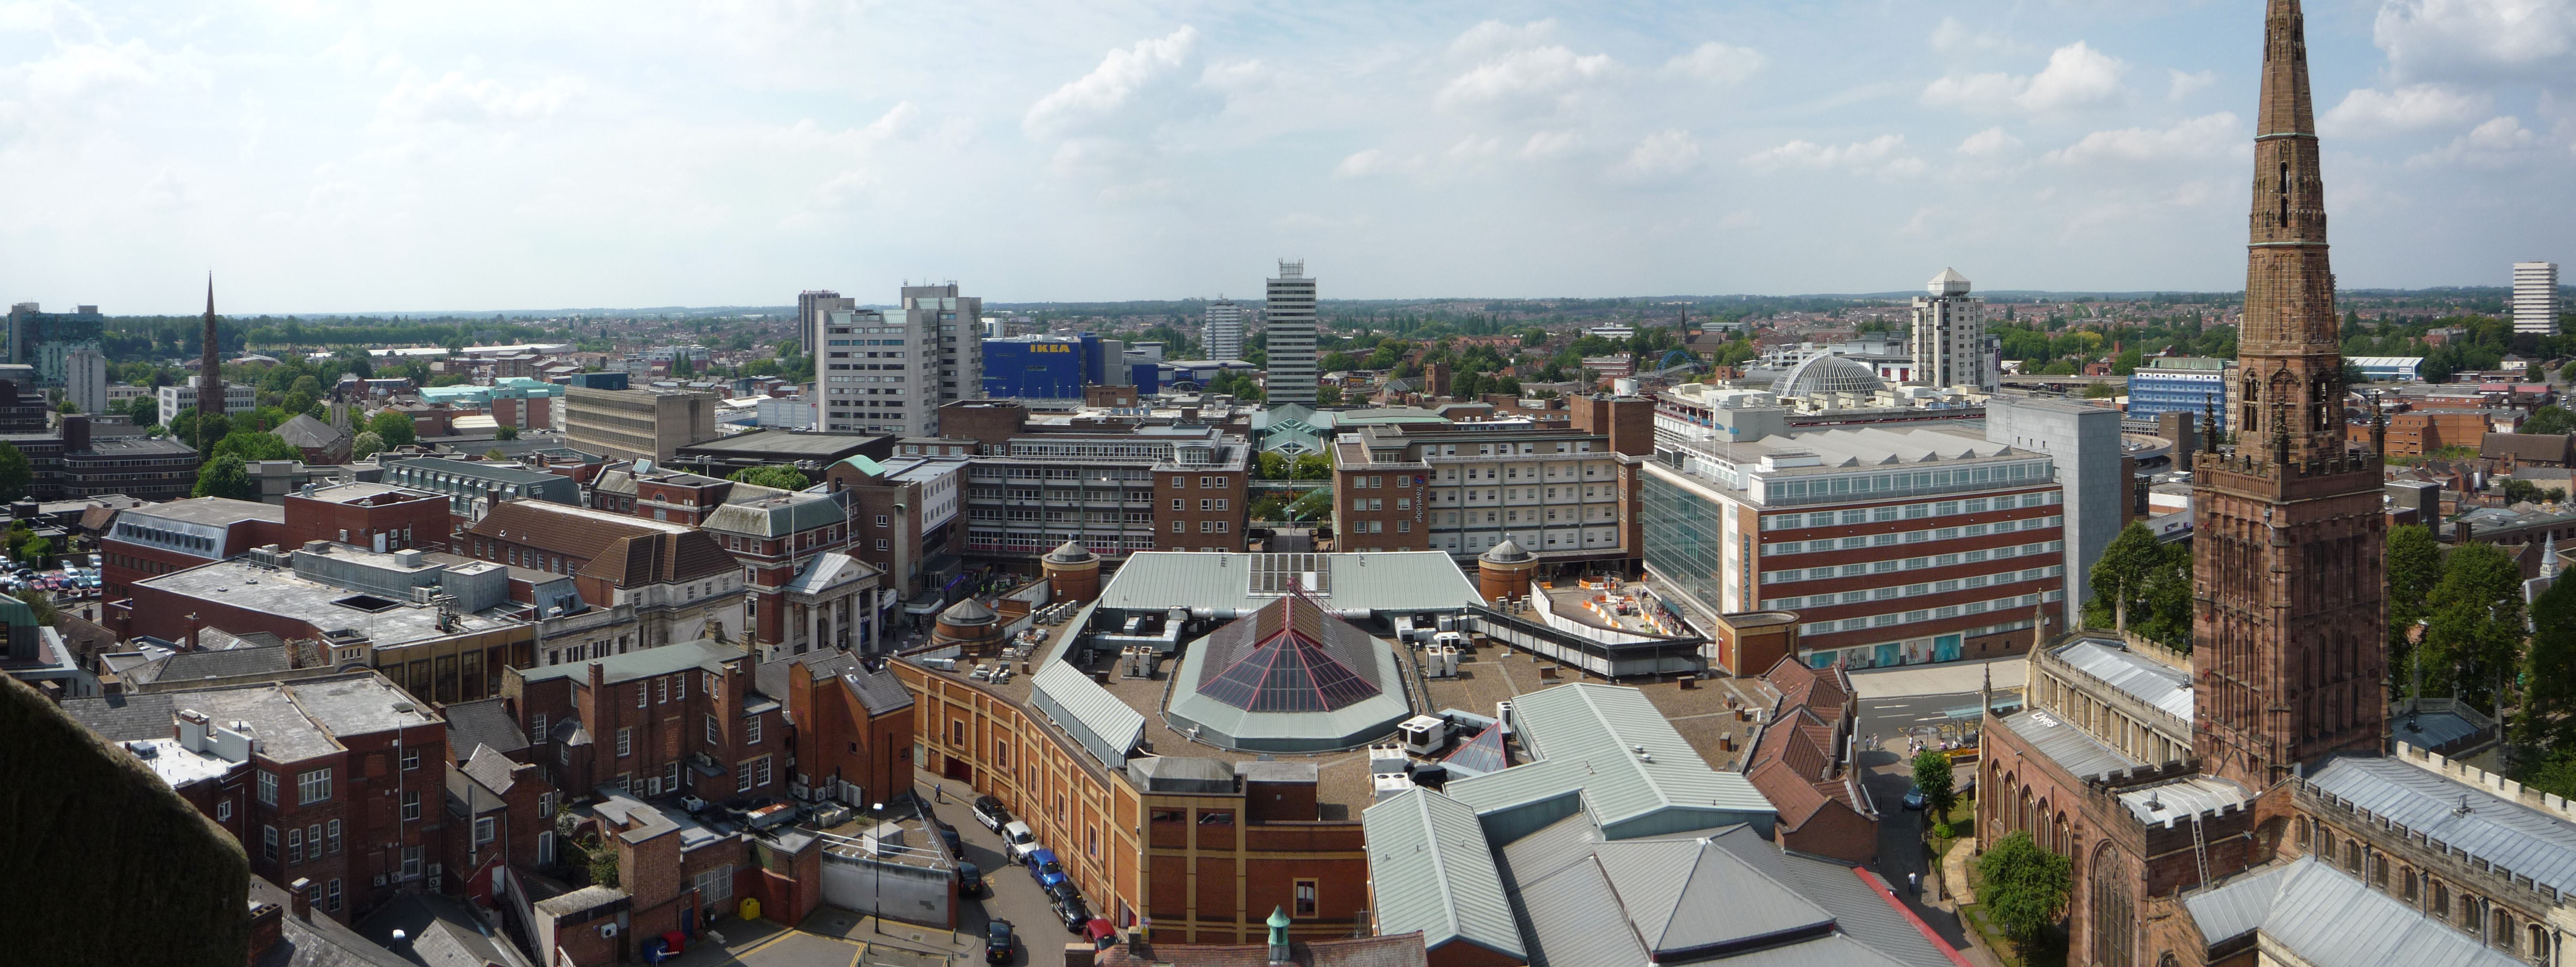 Coventry Transformation Plans Approved